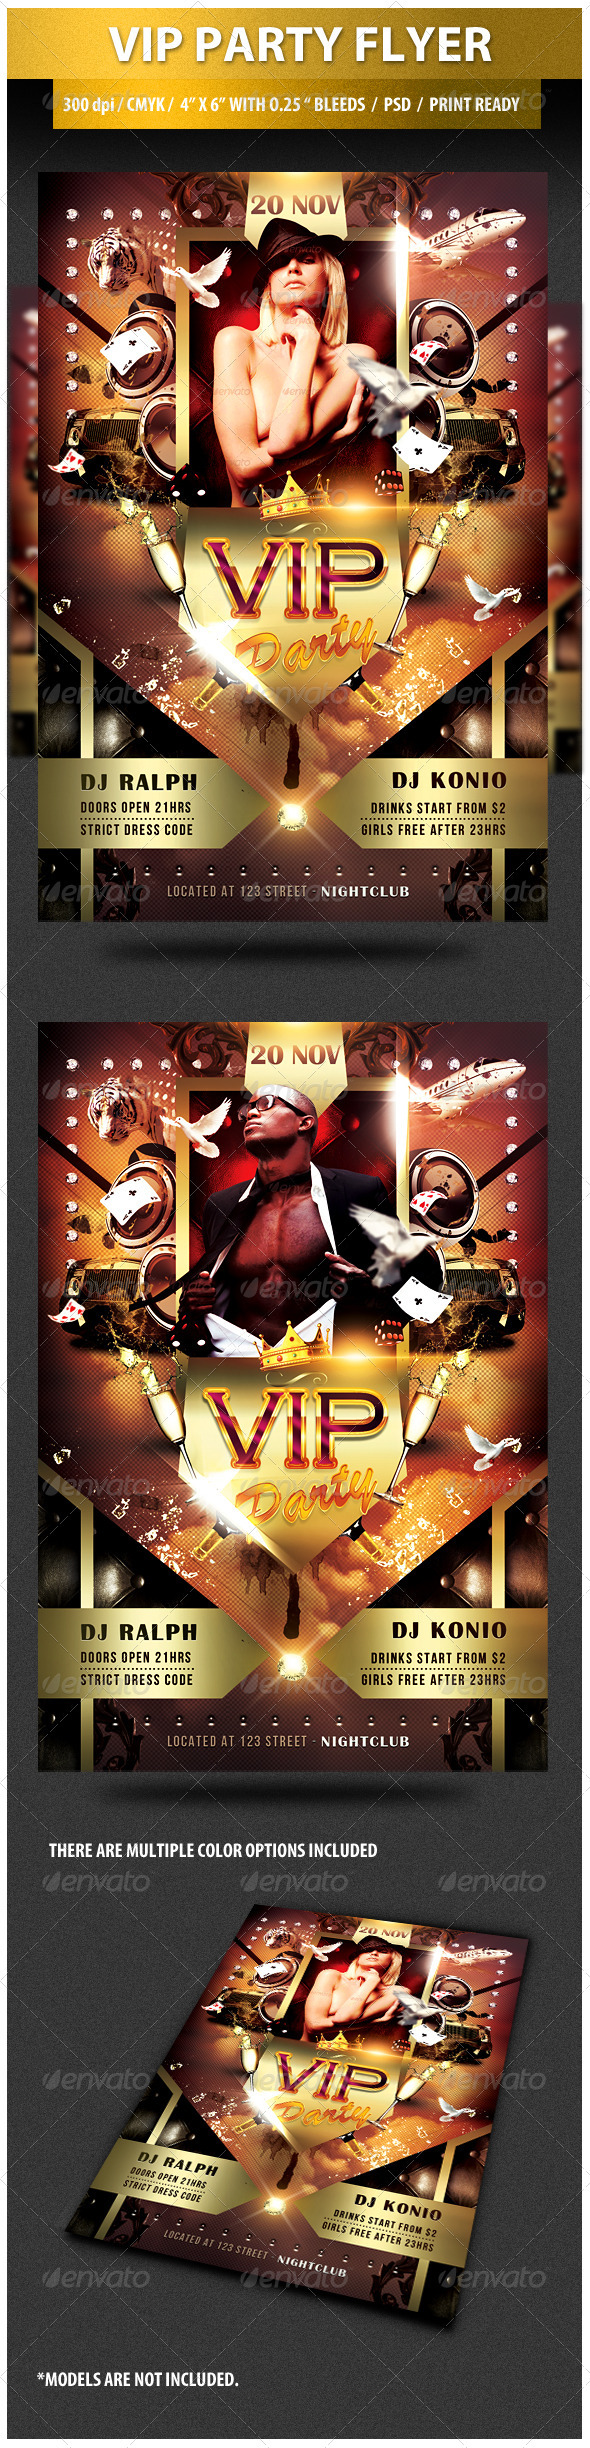 GraphicRiver VIP Party Flyer - 2 3433115 Created: